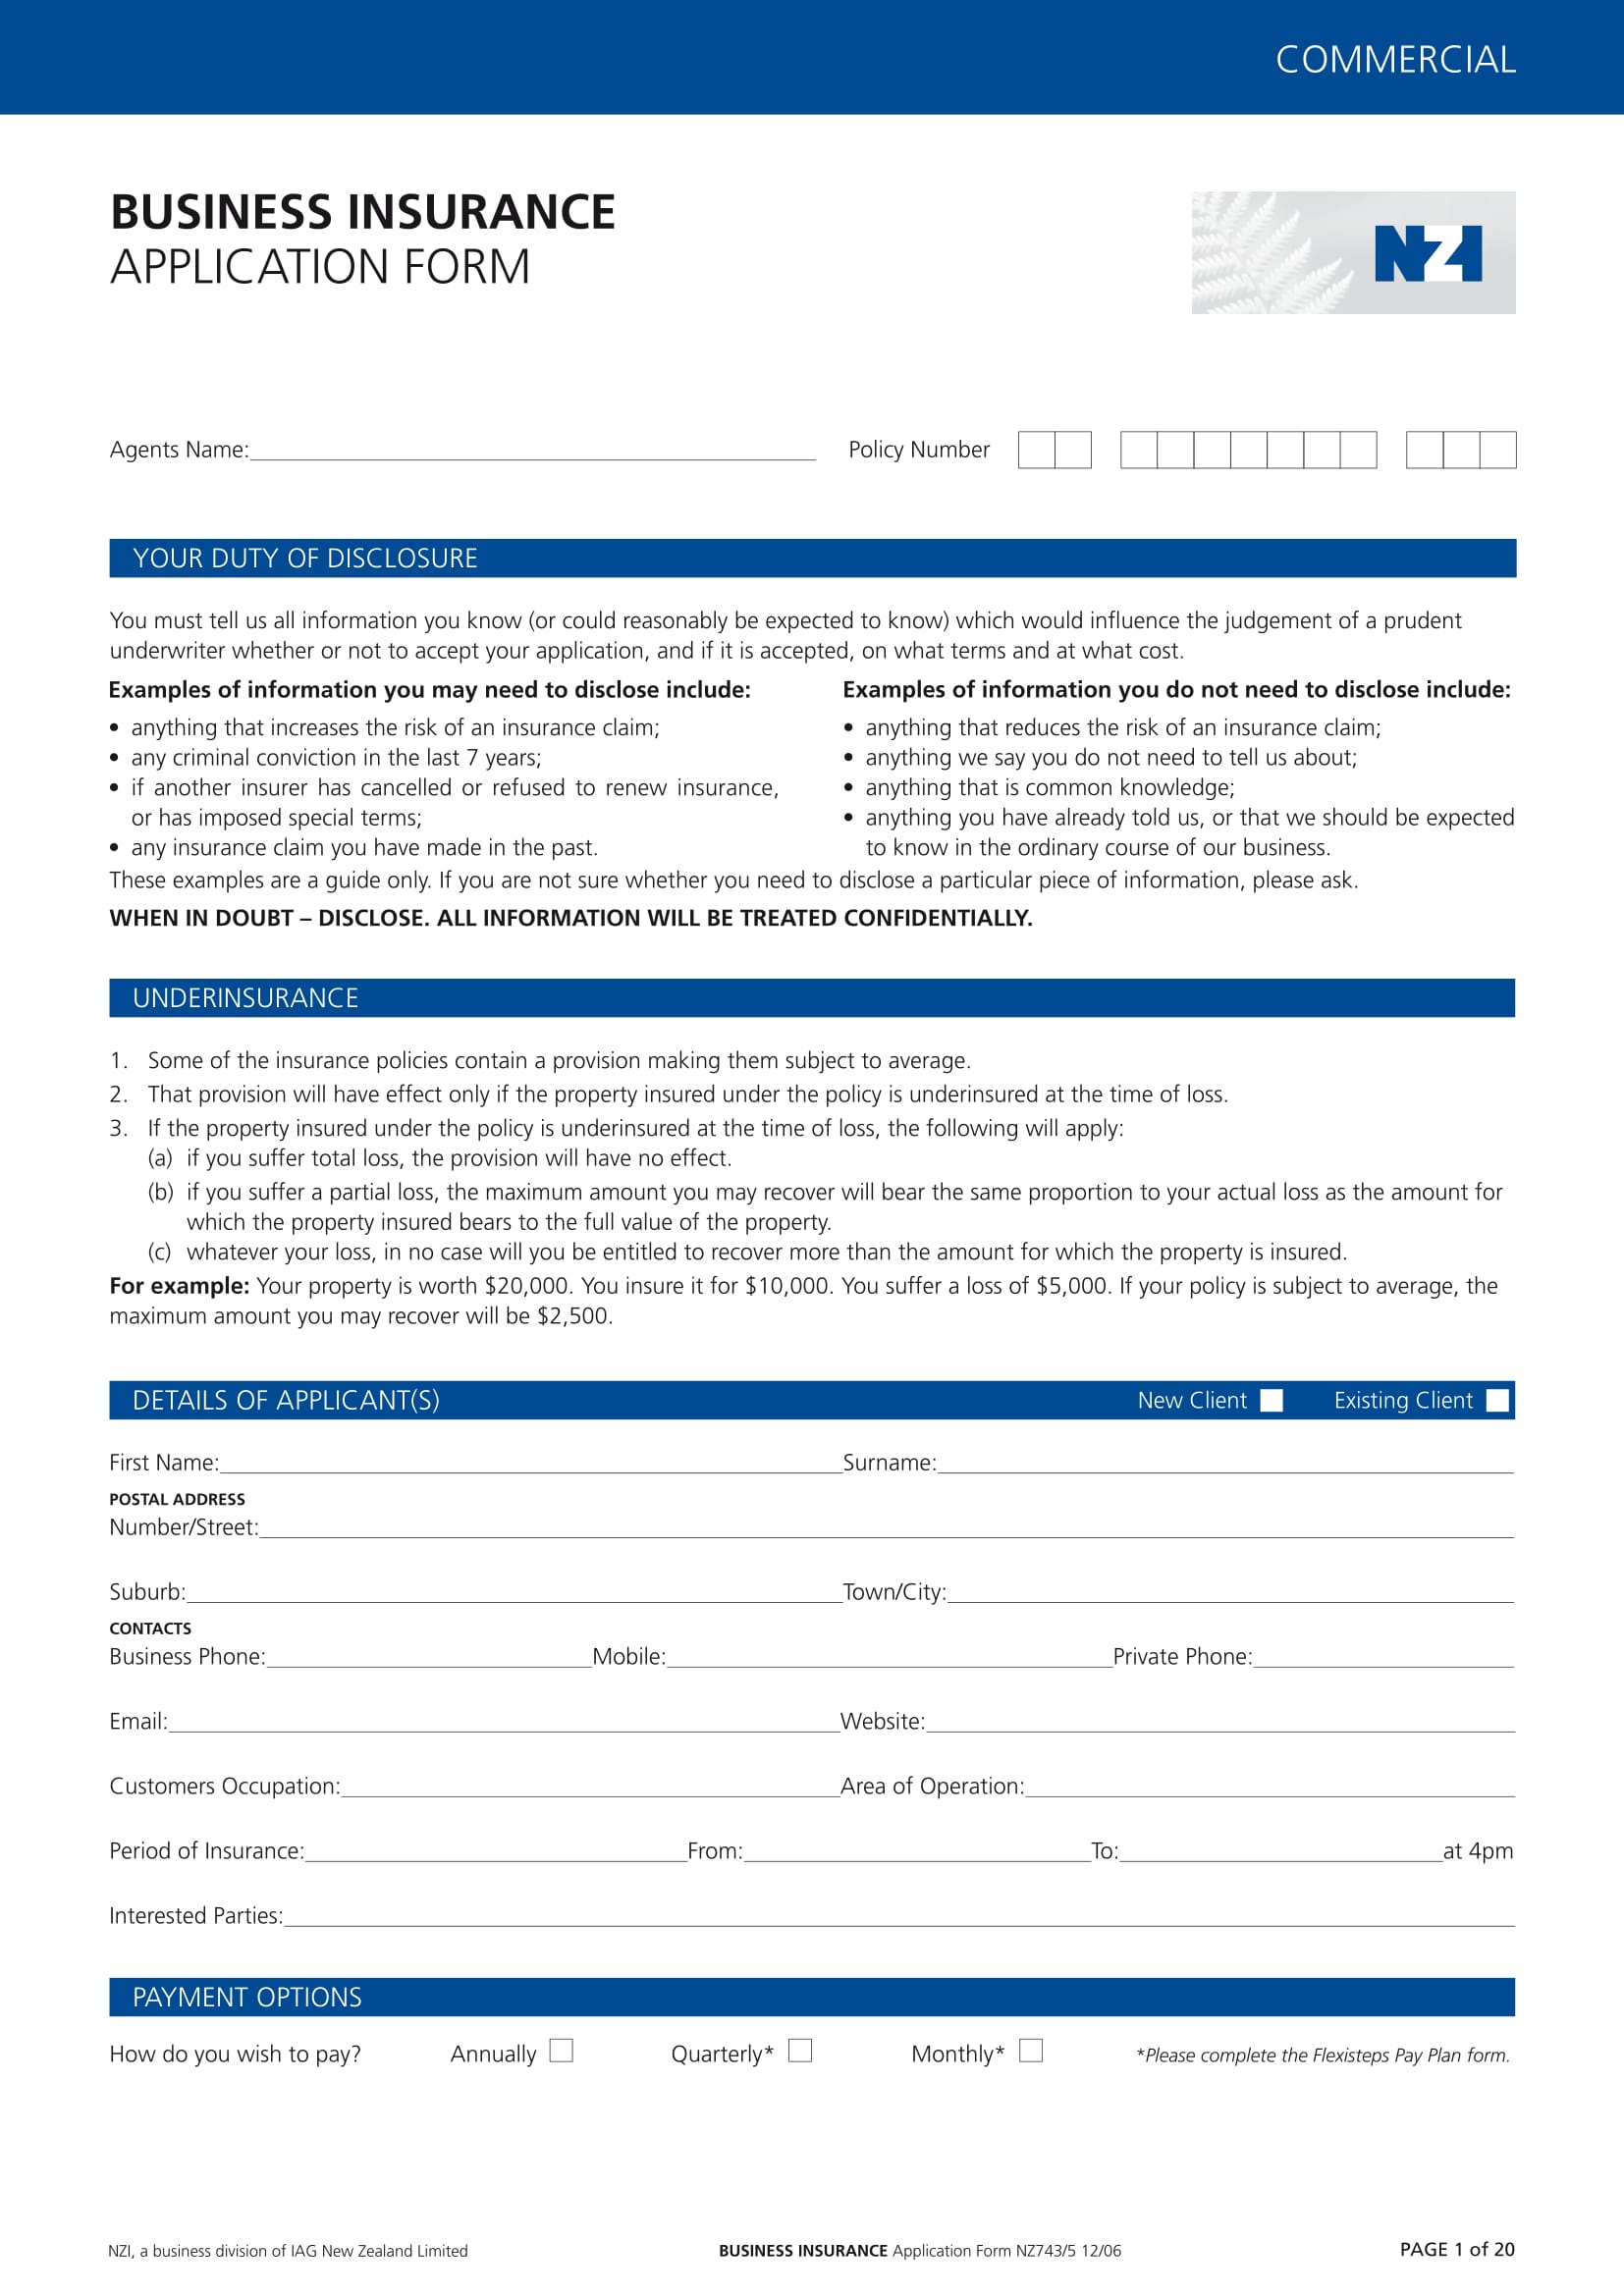 business insurance application form 01